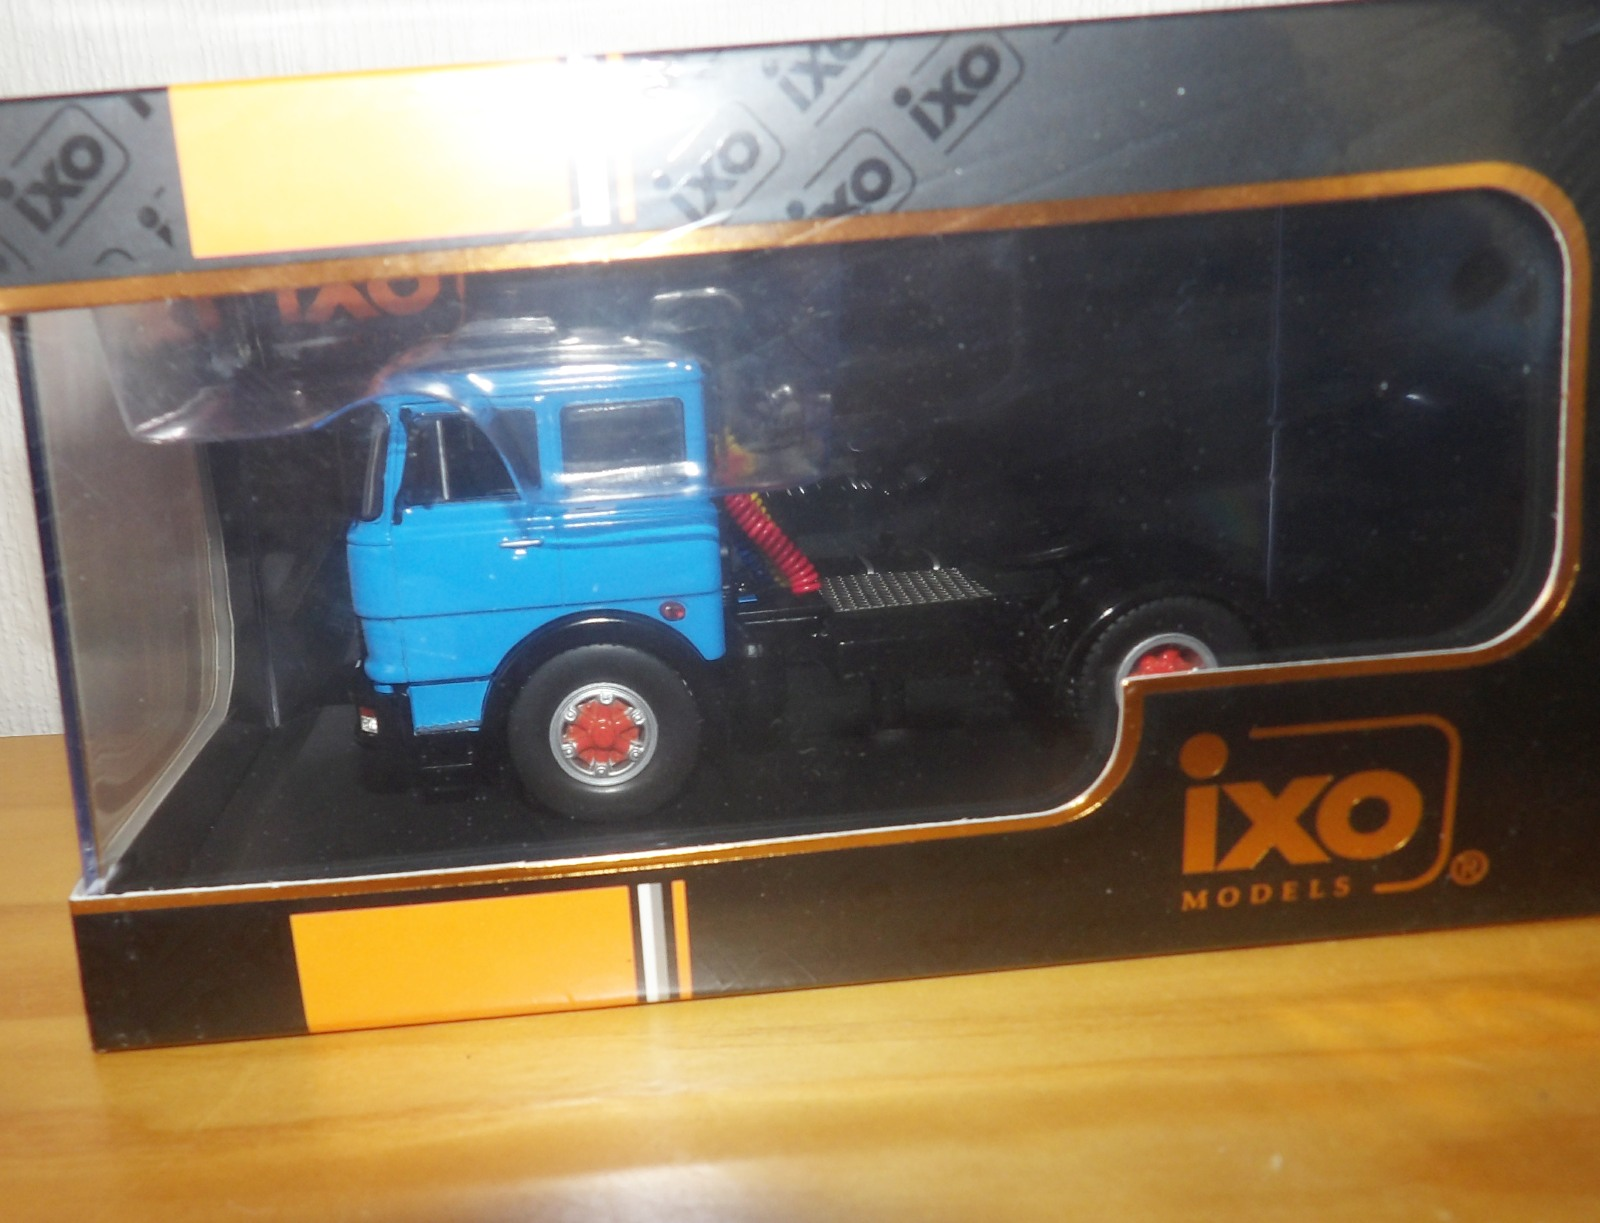 Lot 712 - 1.43 Scale IXO FIAT 619 N1 1980 Tractor Unit. P&P Group 1 (£14+VAT for the first lot and £1+VAT